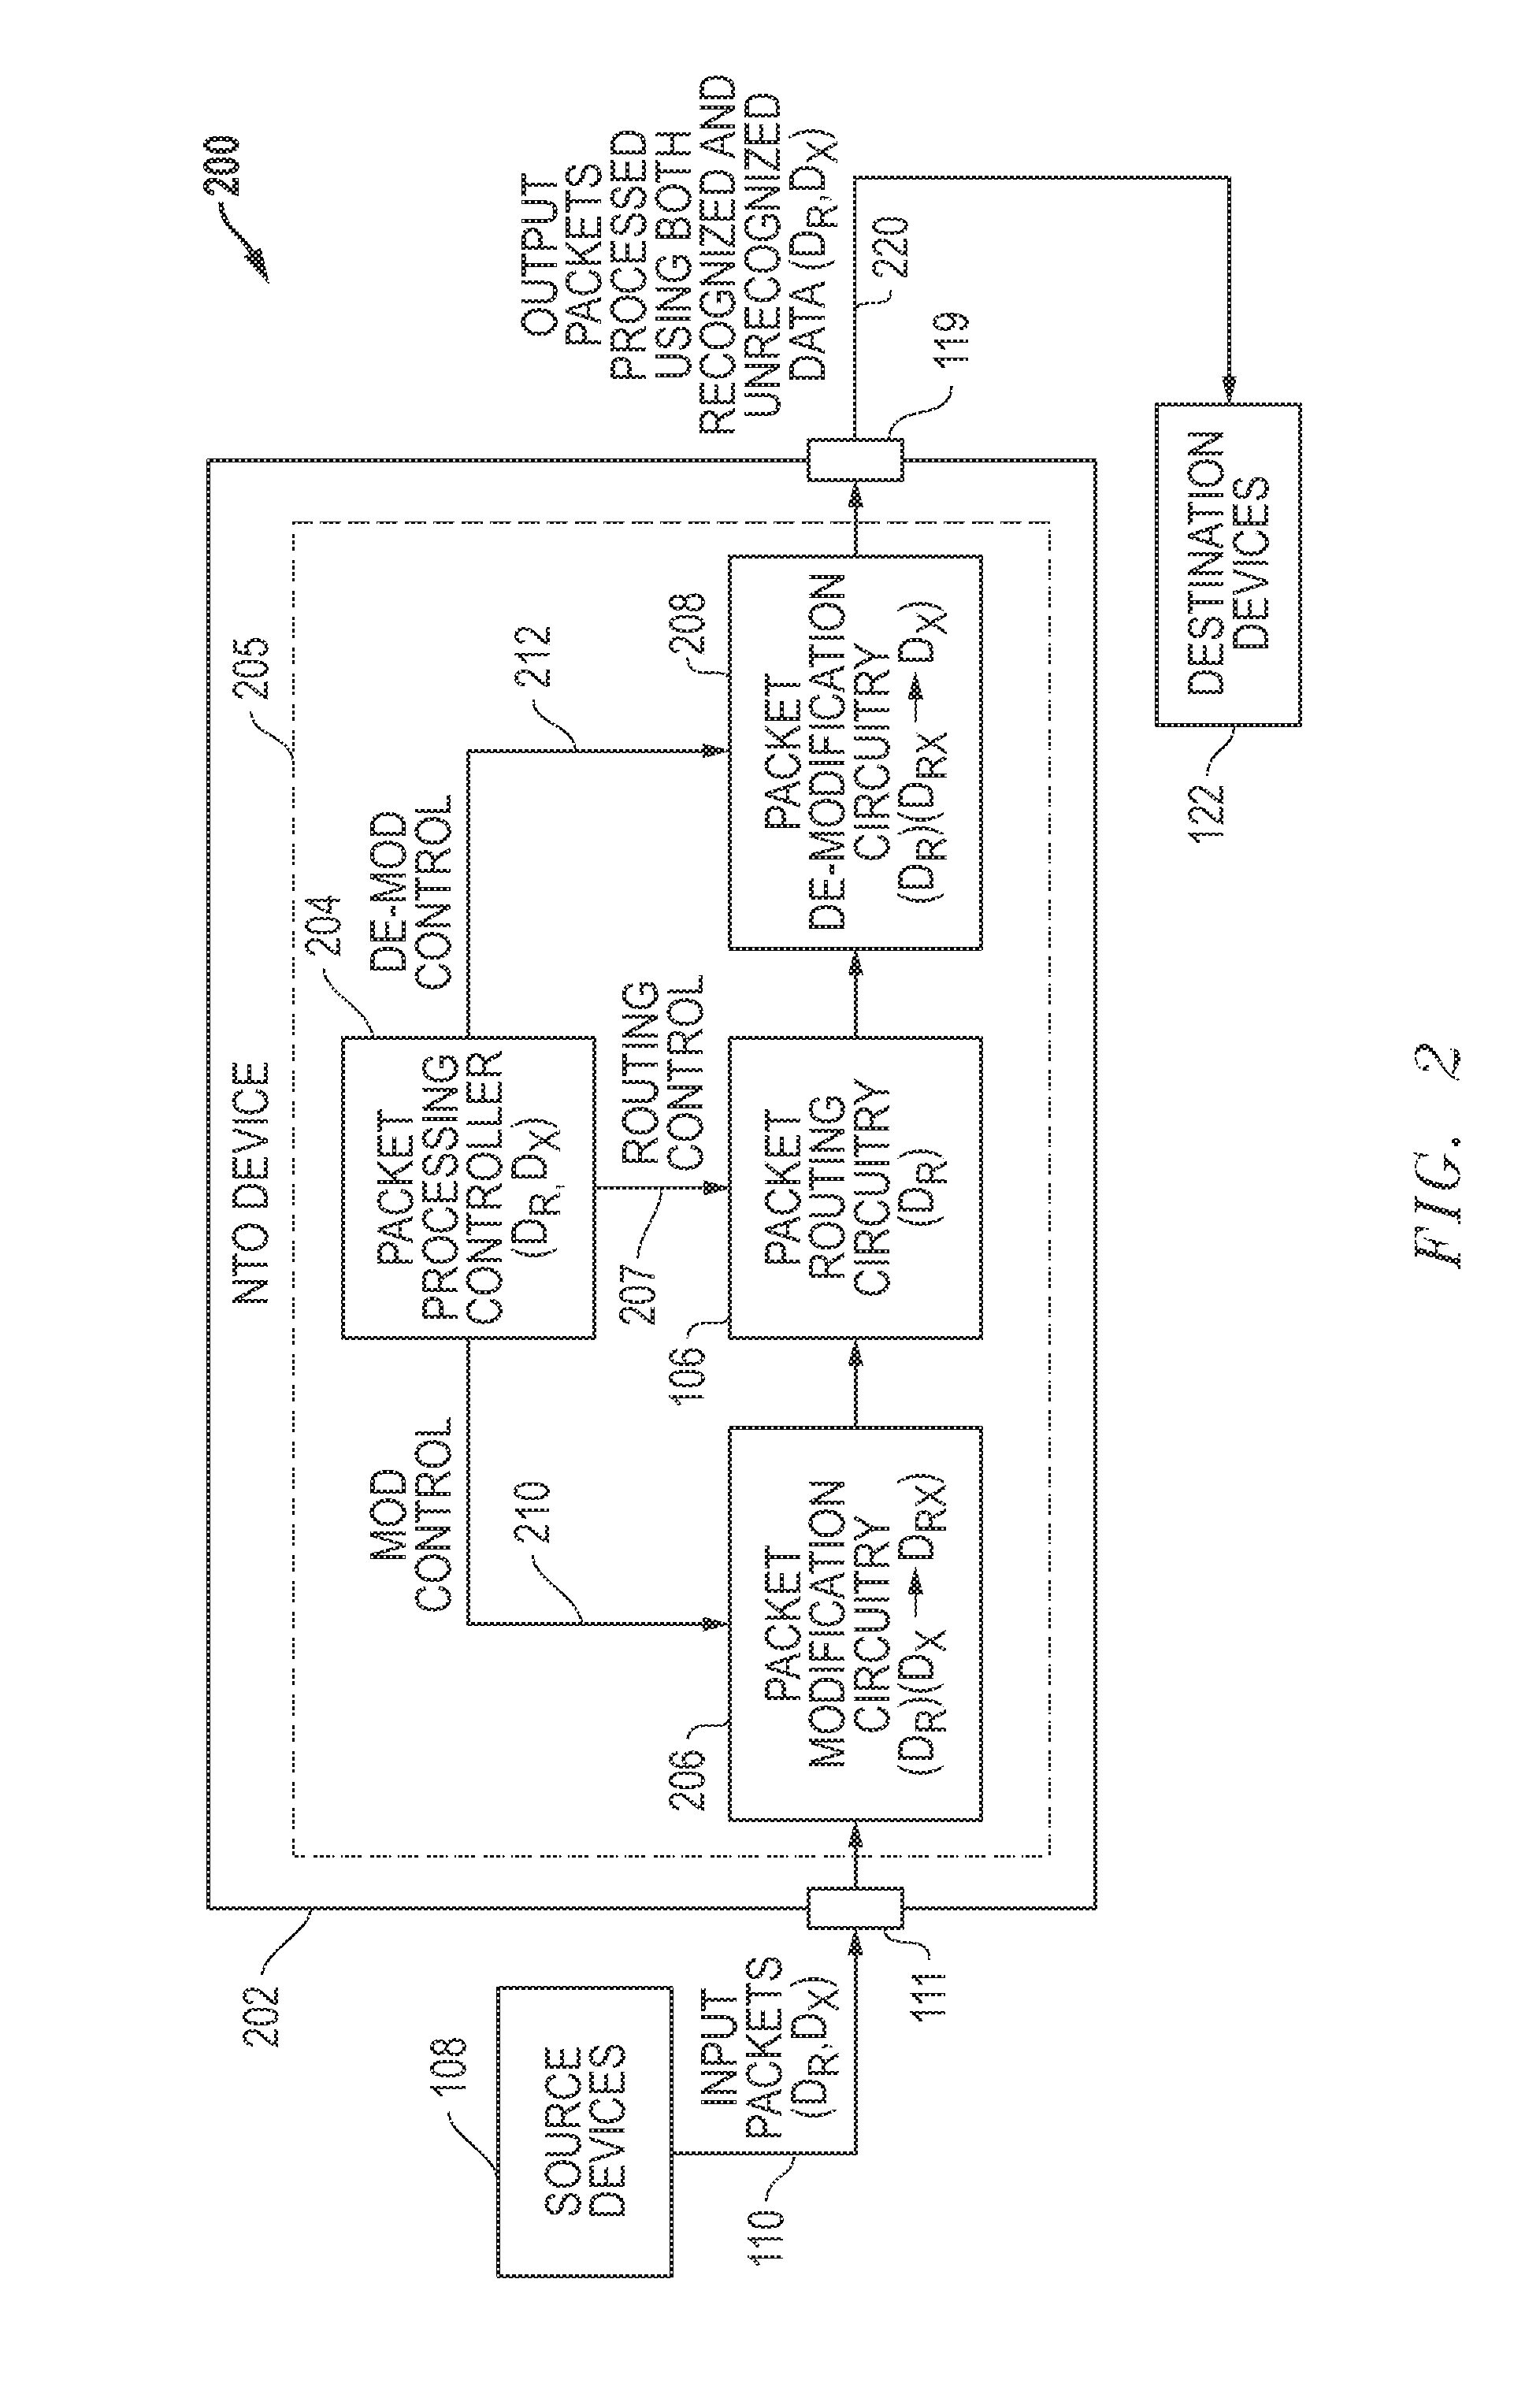 us20130259045 systems and methods for modifying TCP IP Settings patent drawing